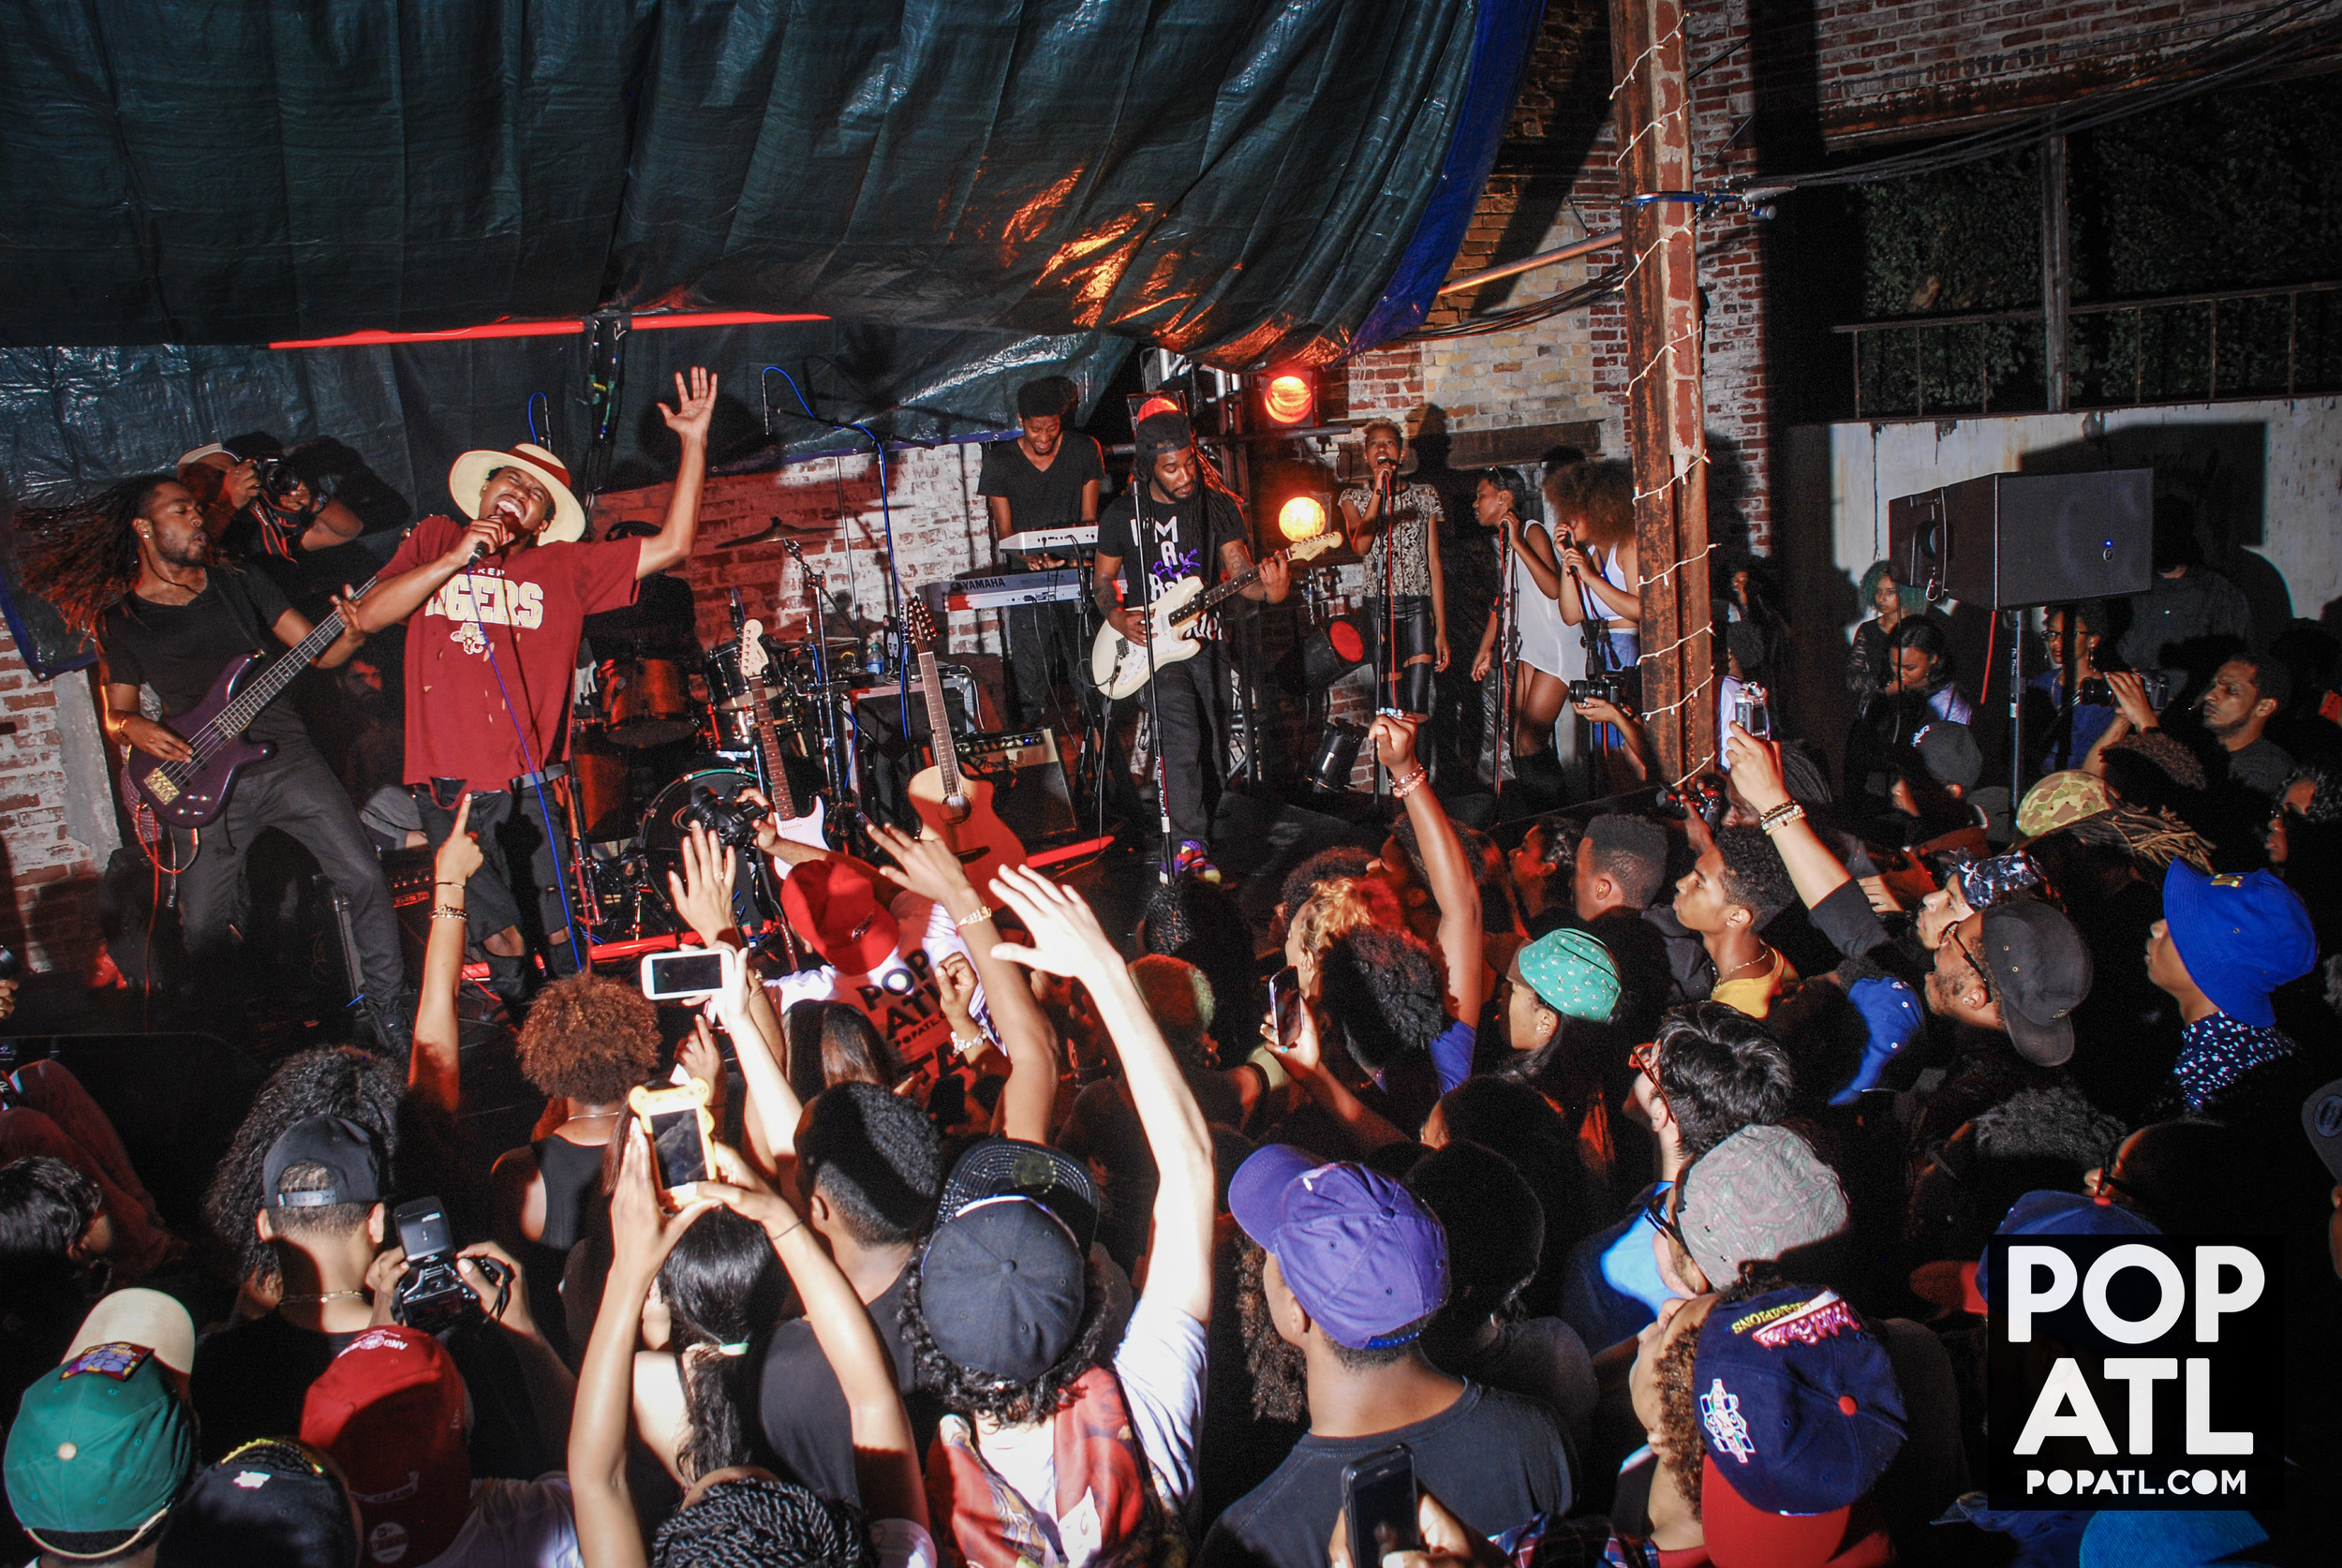 RAURY-RAURFEST-AT-POP-ATL-158.jpg